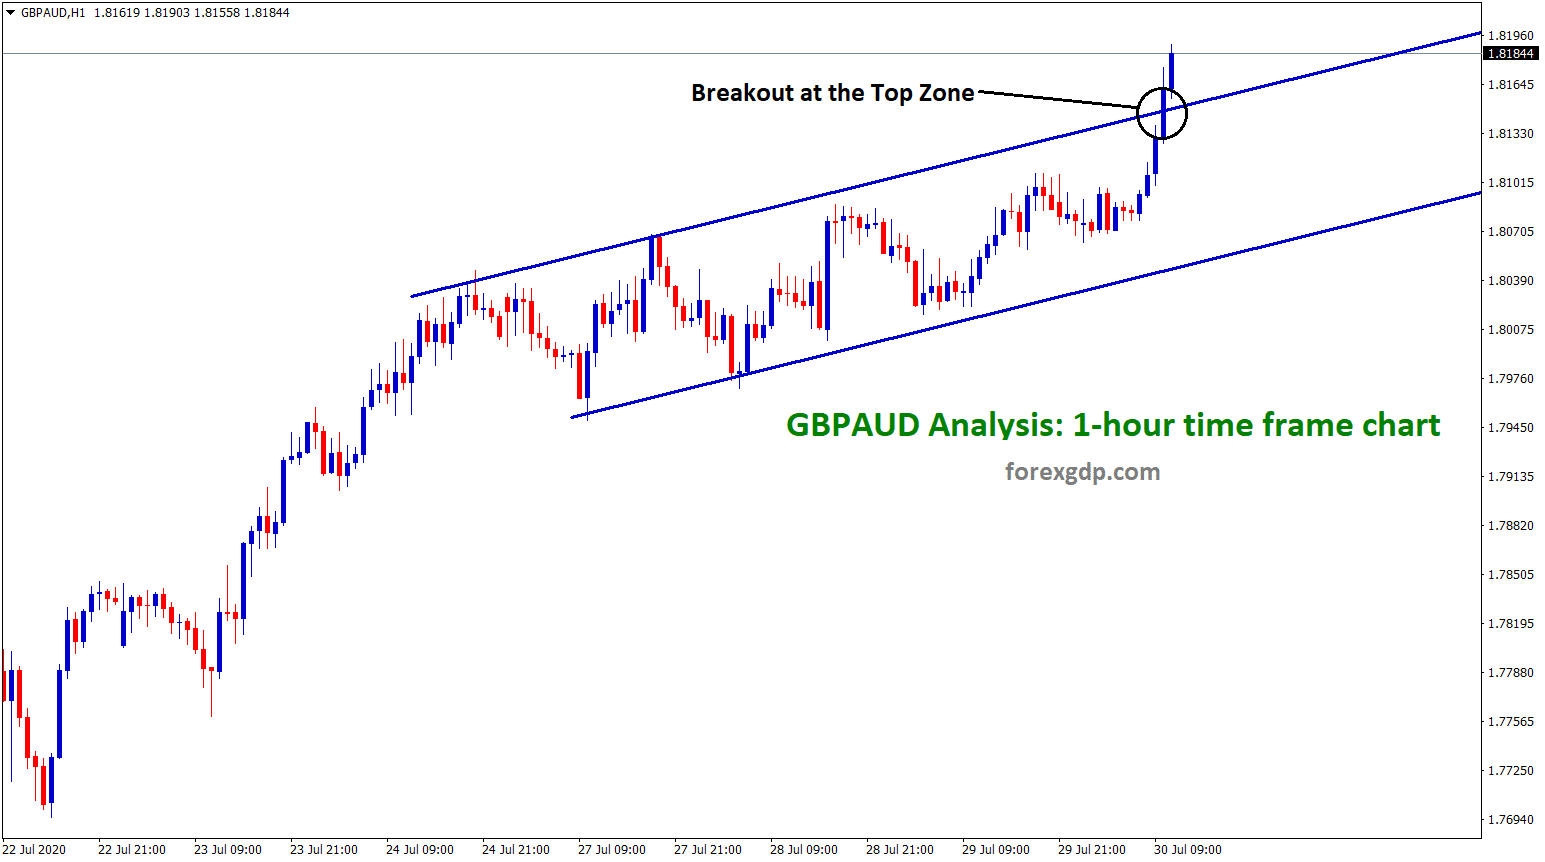 breakout at the top zone in gbpaud